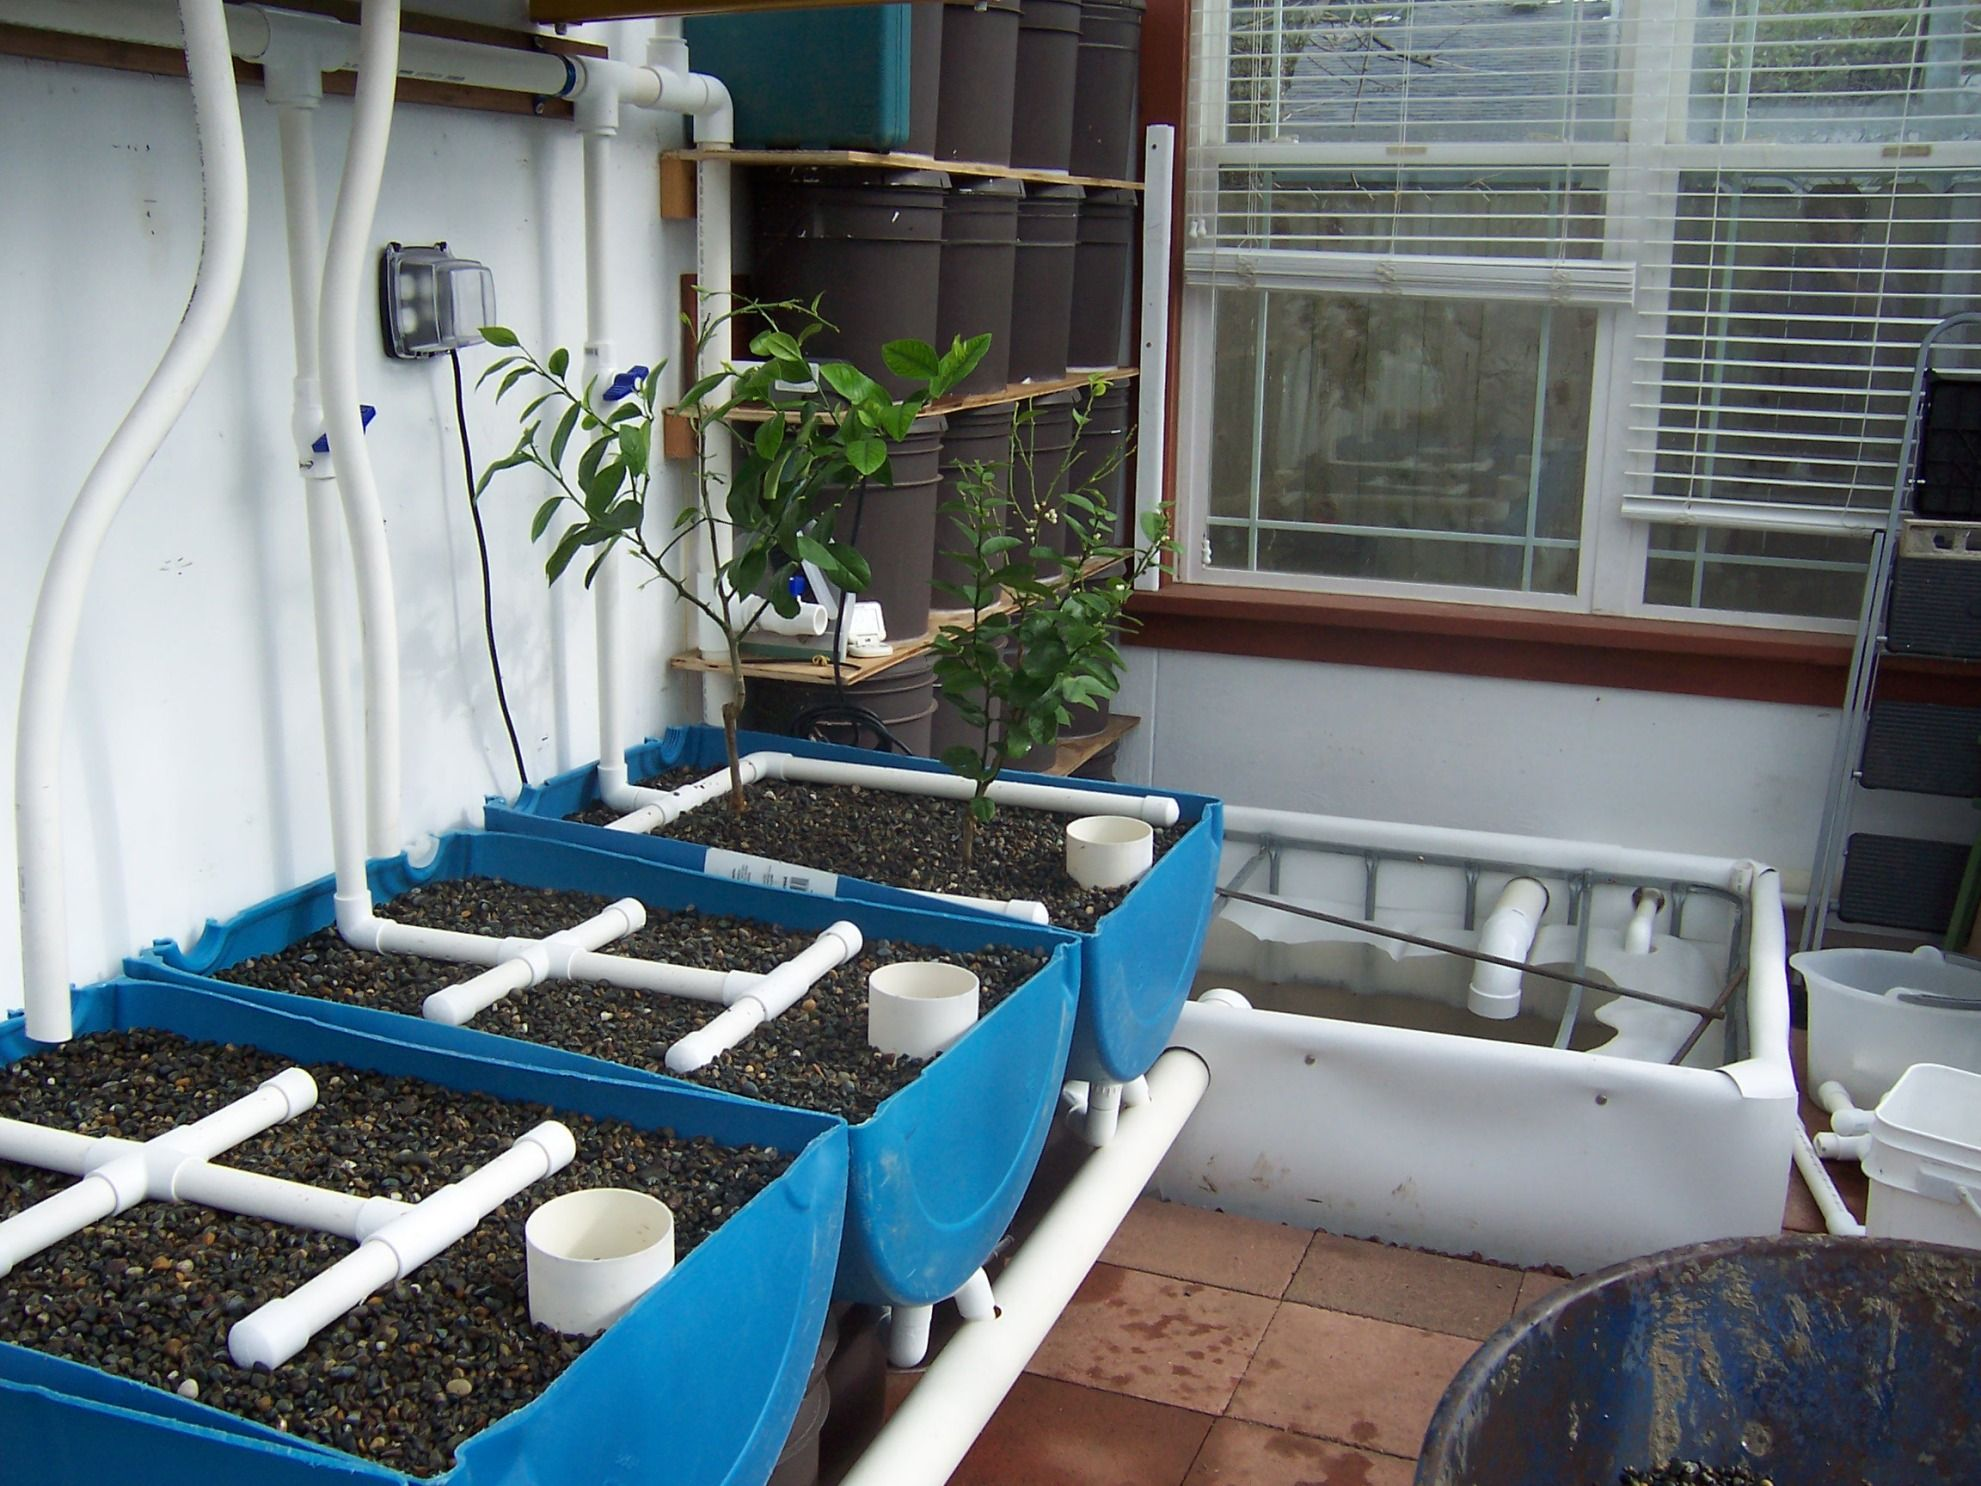 Grow Own Fish Use Water To Grow Plants In Blue Barrels Etc.kind Of Cool But  Weird, Brad Looking Into It!